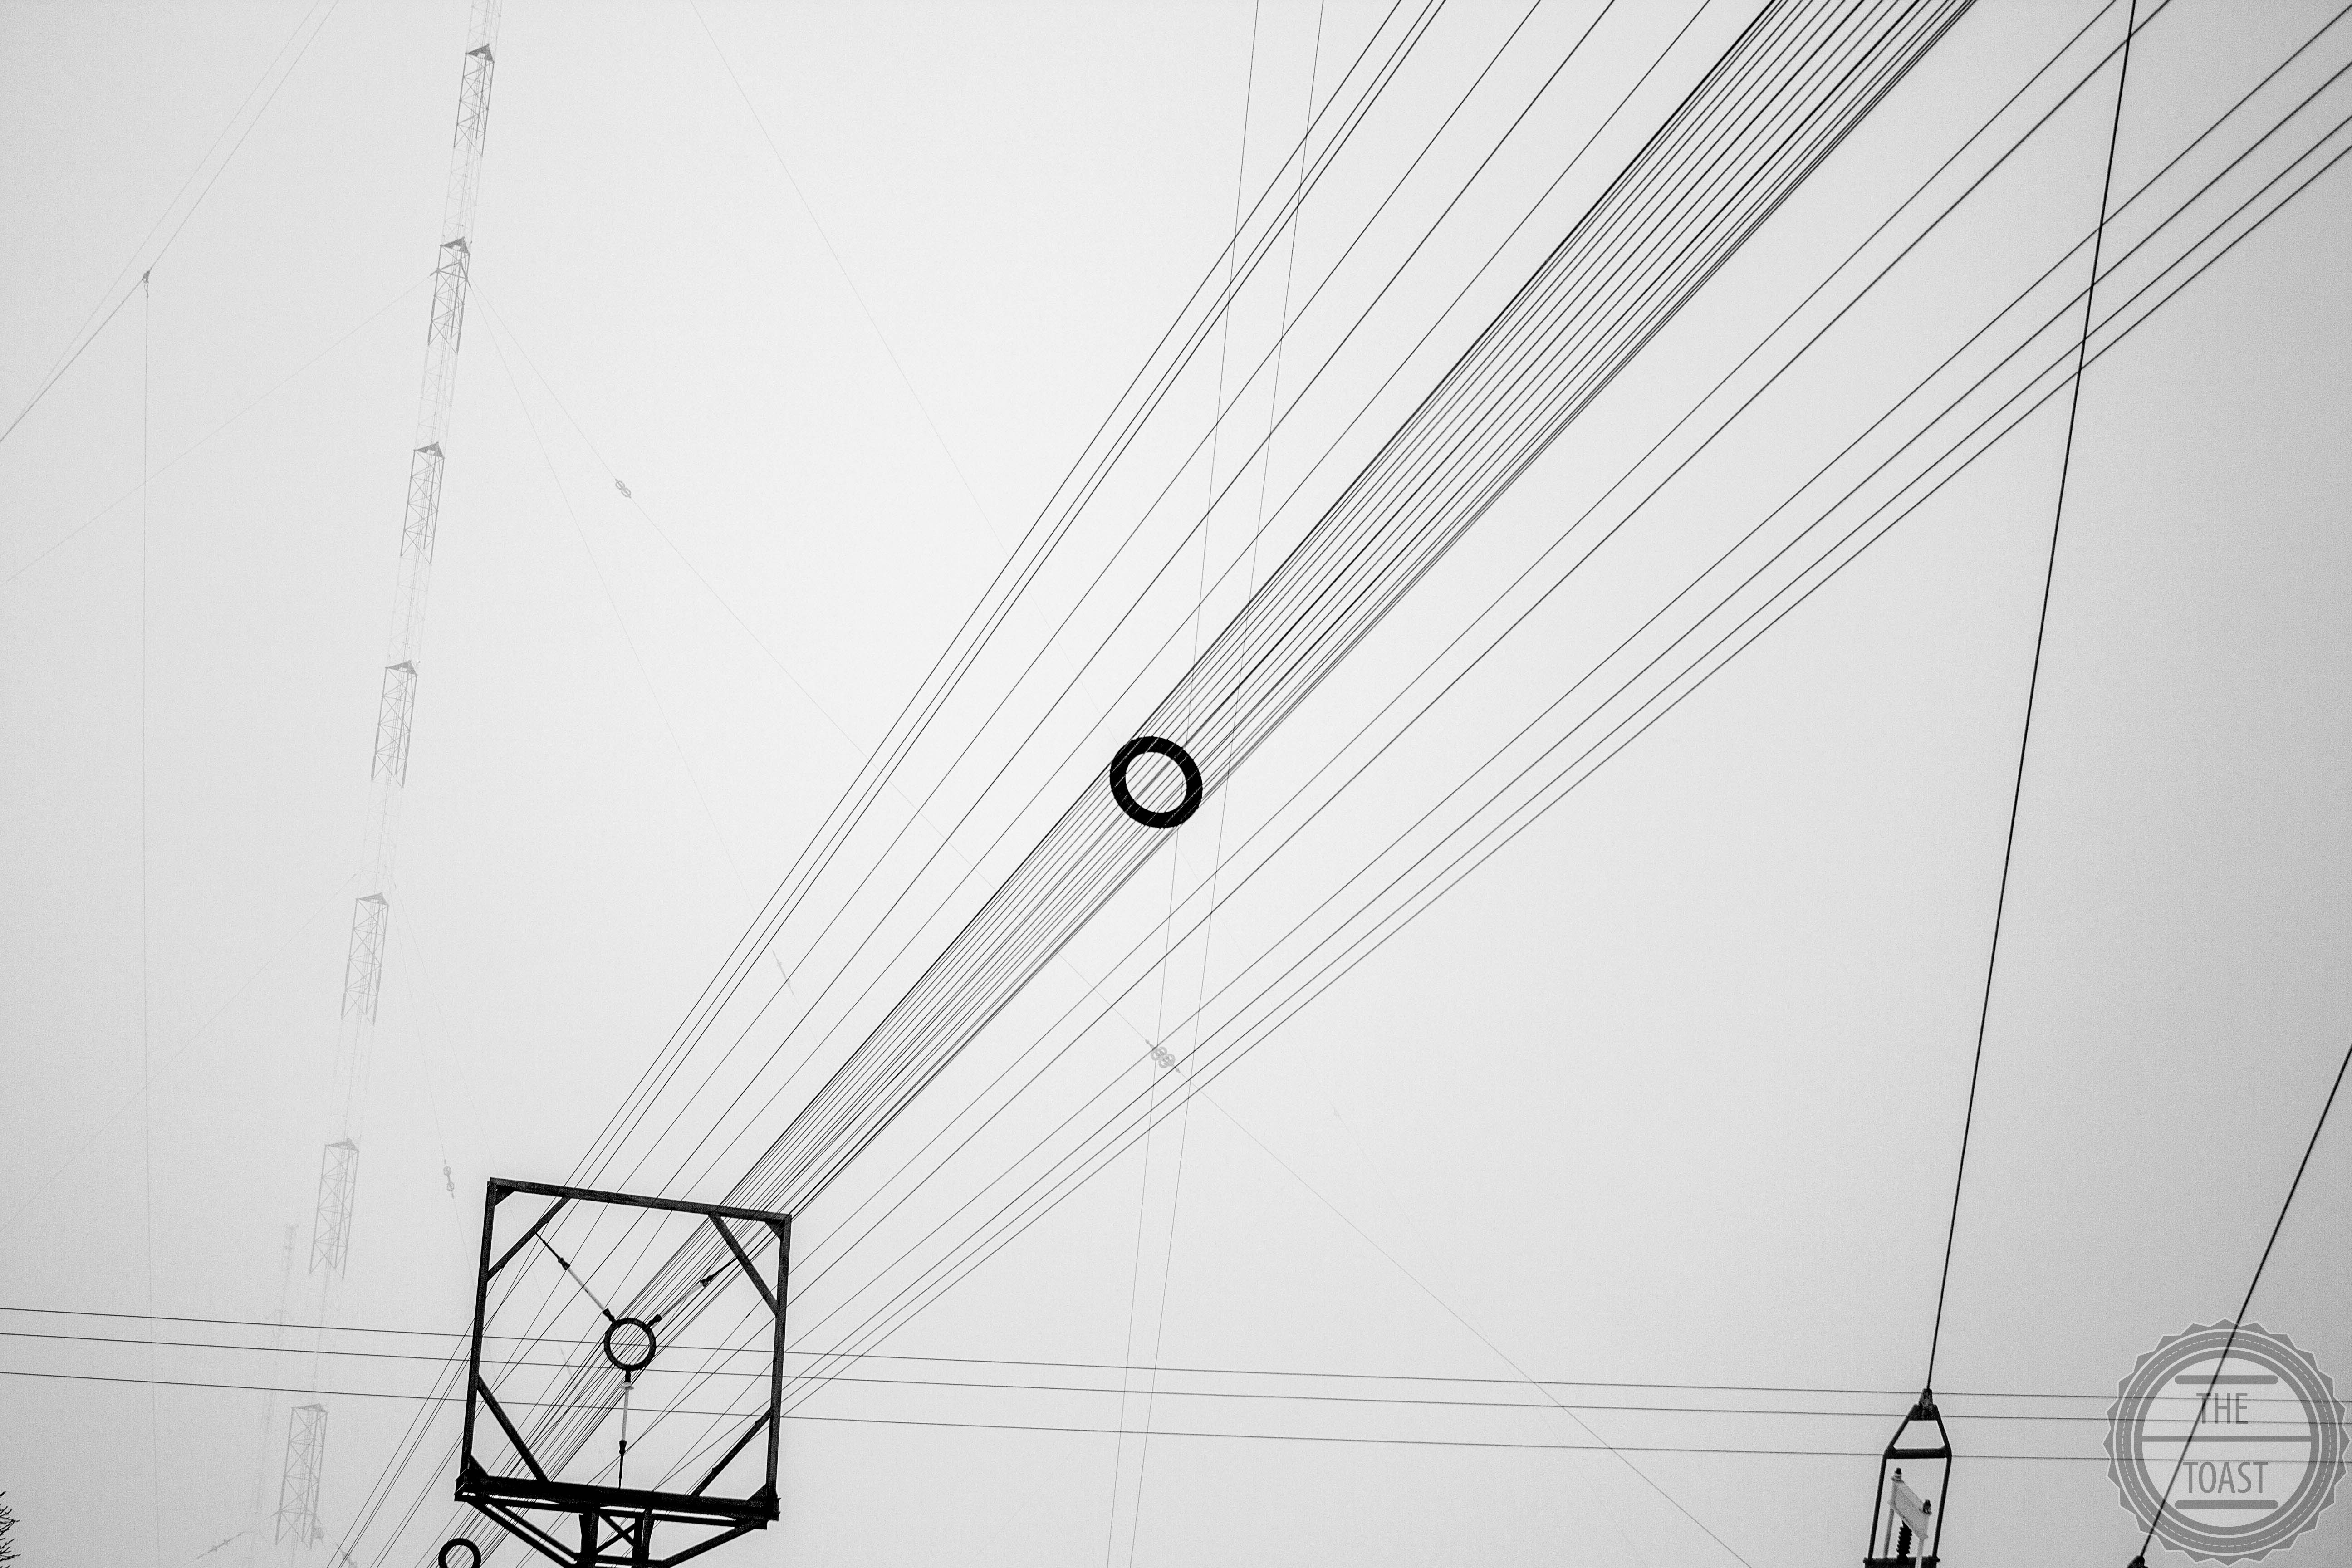 Cables, Wires And Electricity. by ToastPhtogrphy